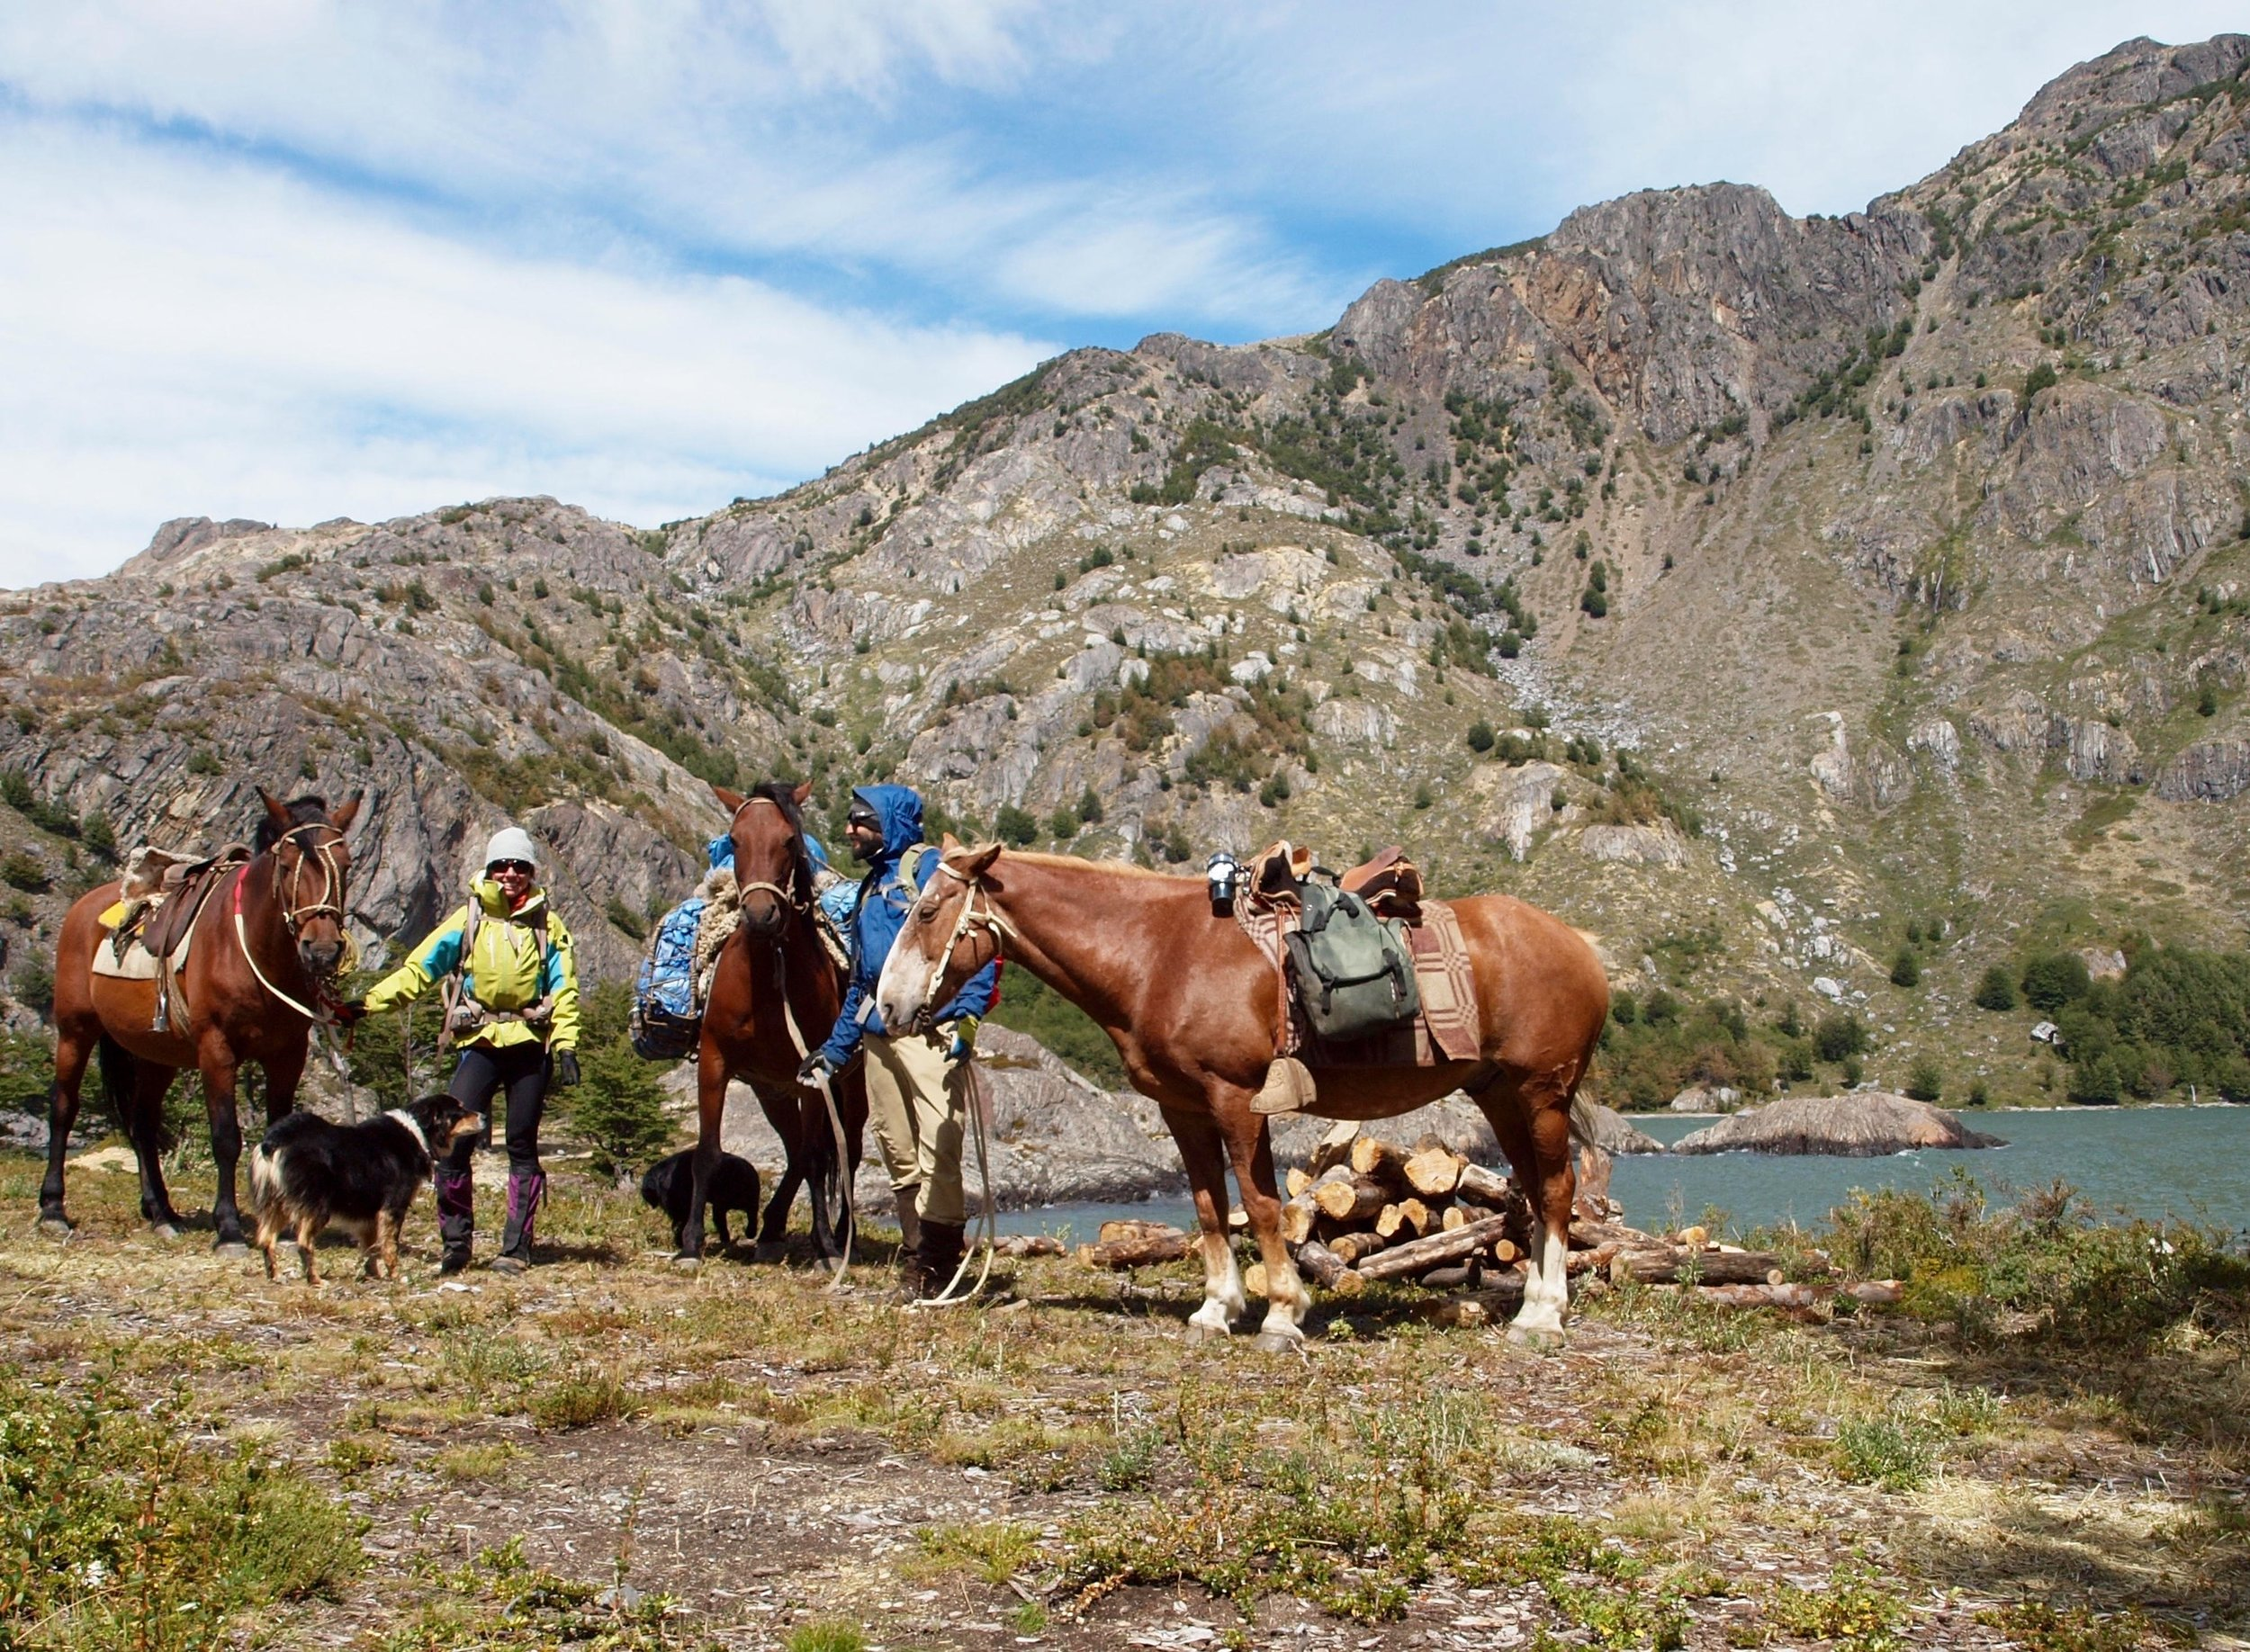 Picante, Greta, Check, Curi Cuyen, Zalig, Alejandro and Aysén in the early days of their expedition across Patagonia